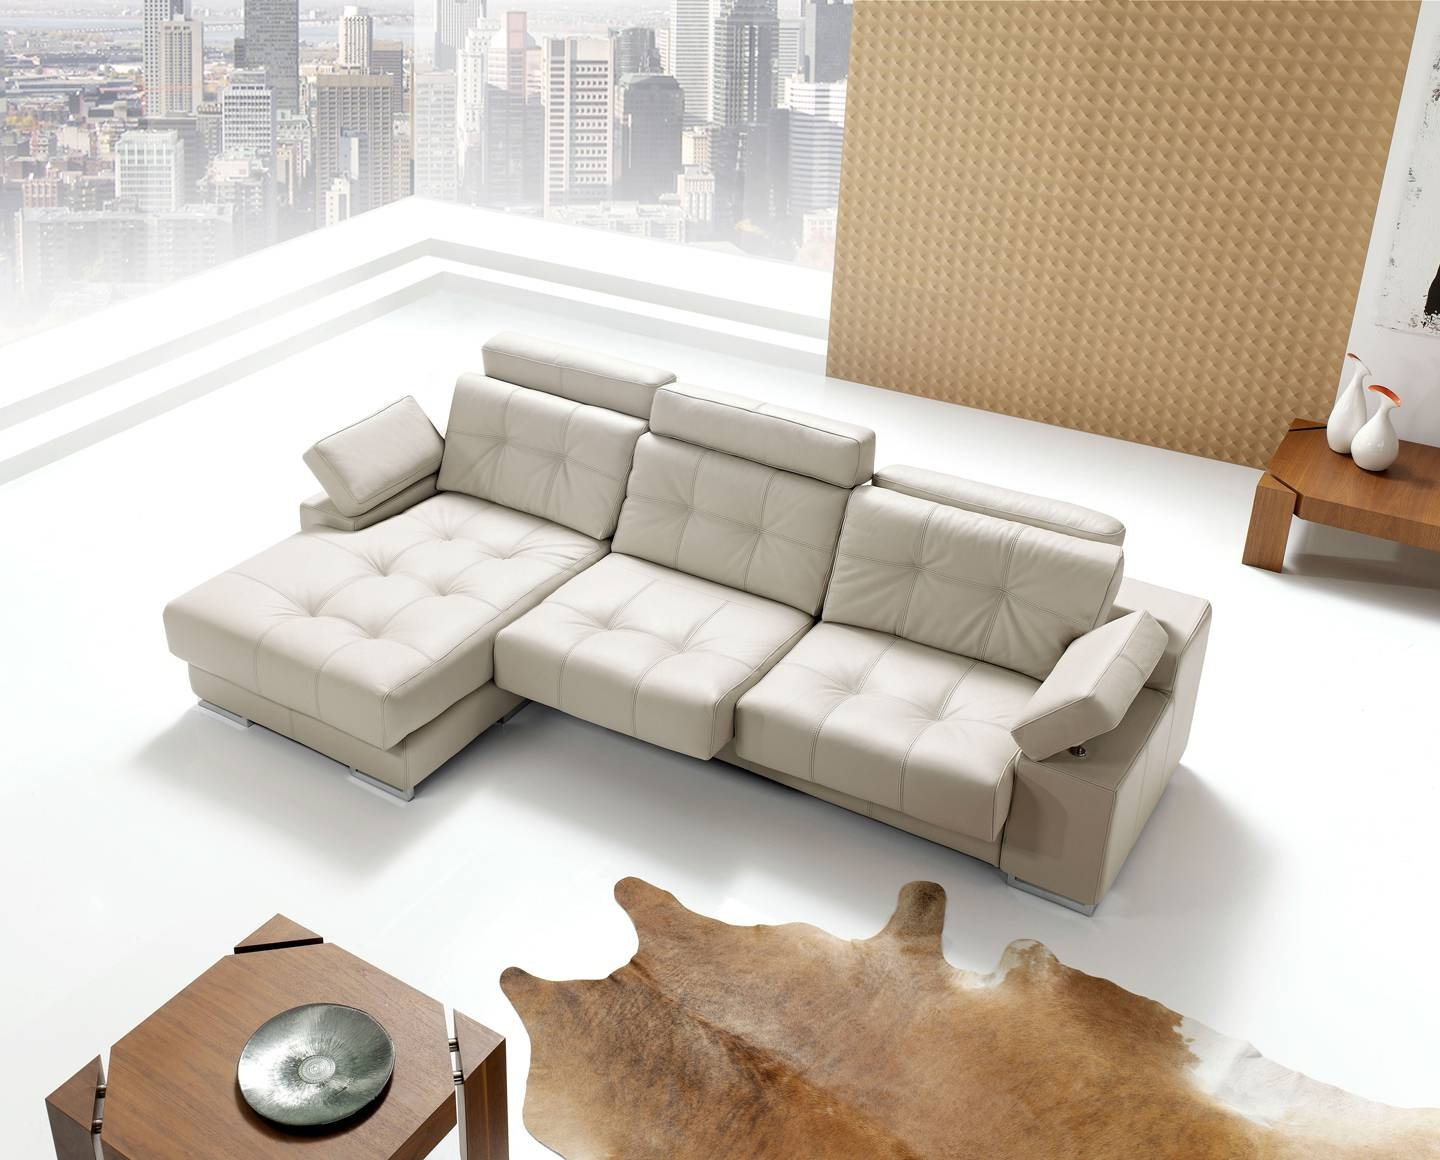 100 Genuine Italian Quality Leather Sectionals Corner Couches With Regard To European Style Sectional Sofas (Image 1 of 15)